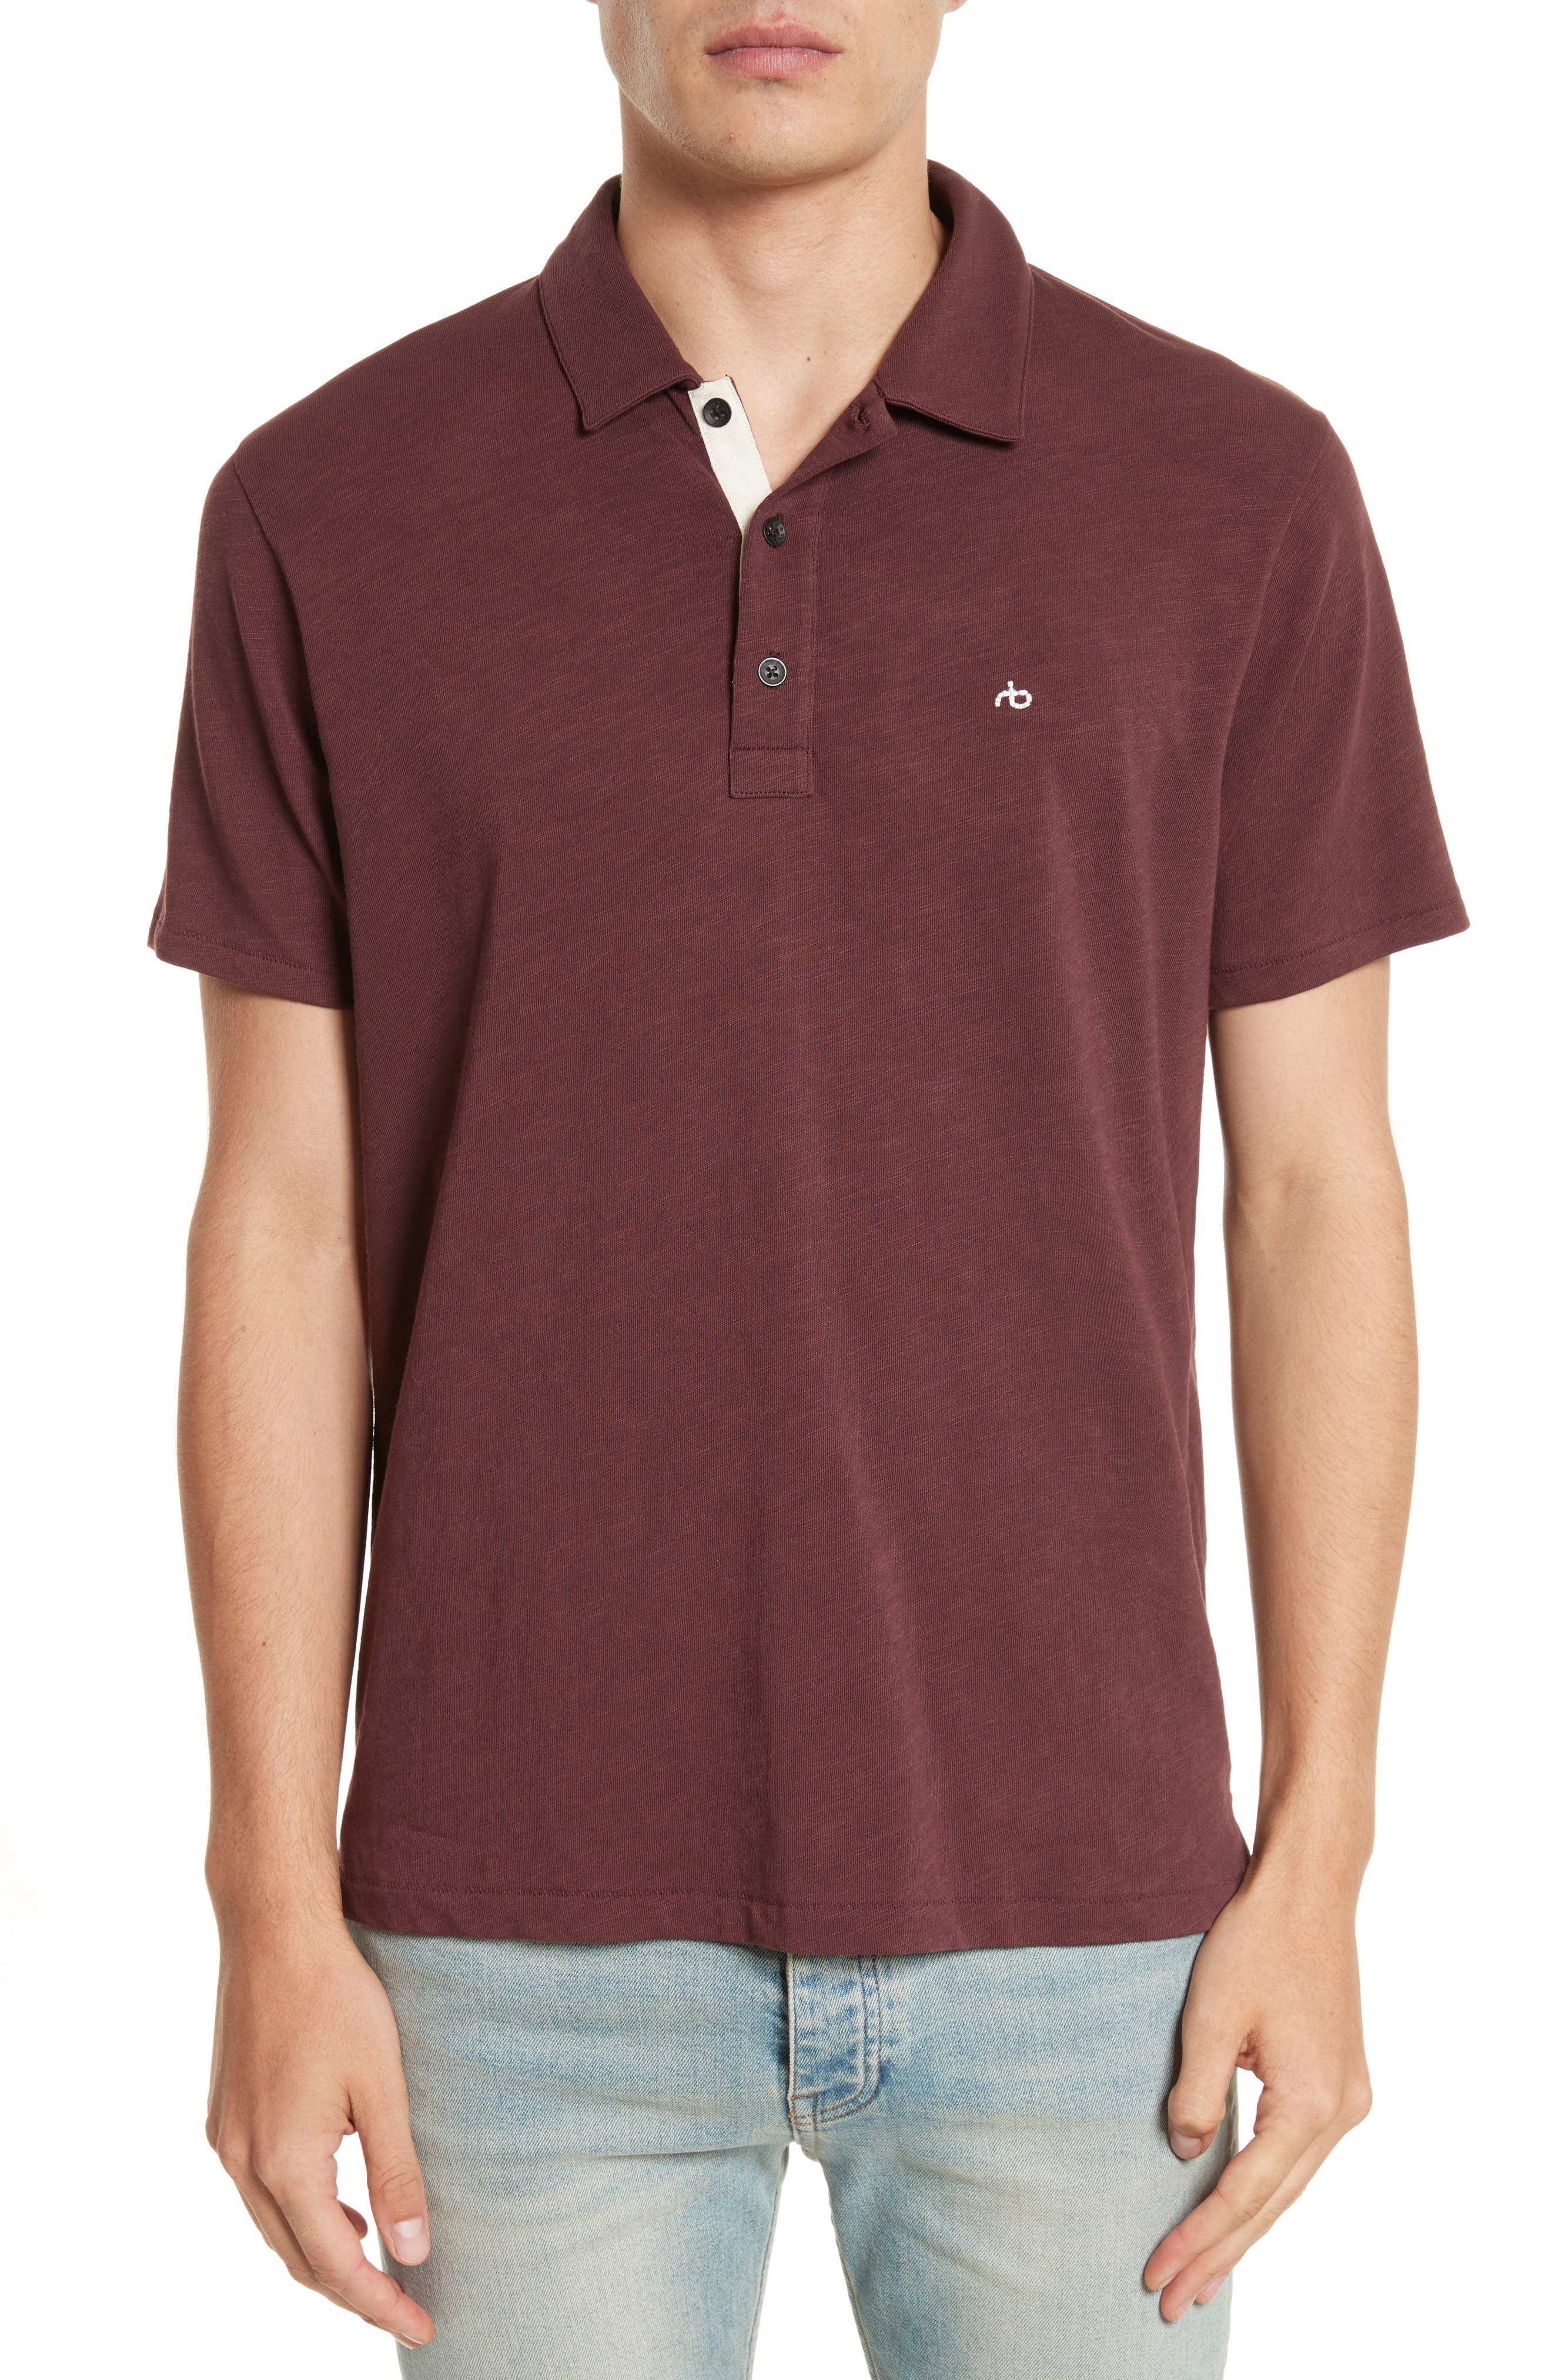 RAG & BONE Standard Issue Slub Jersey Polo